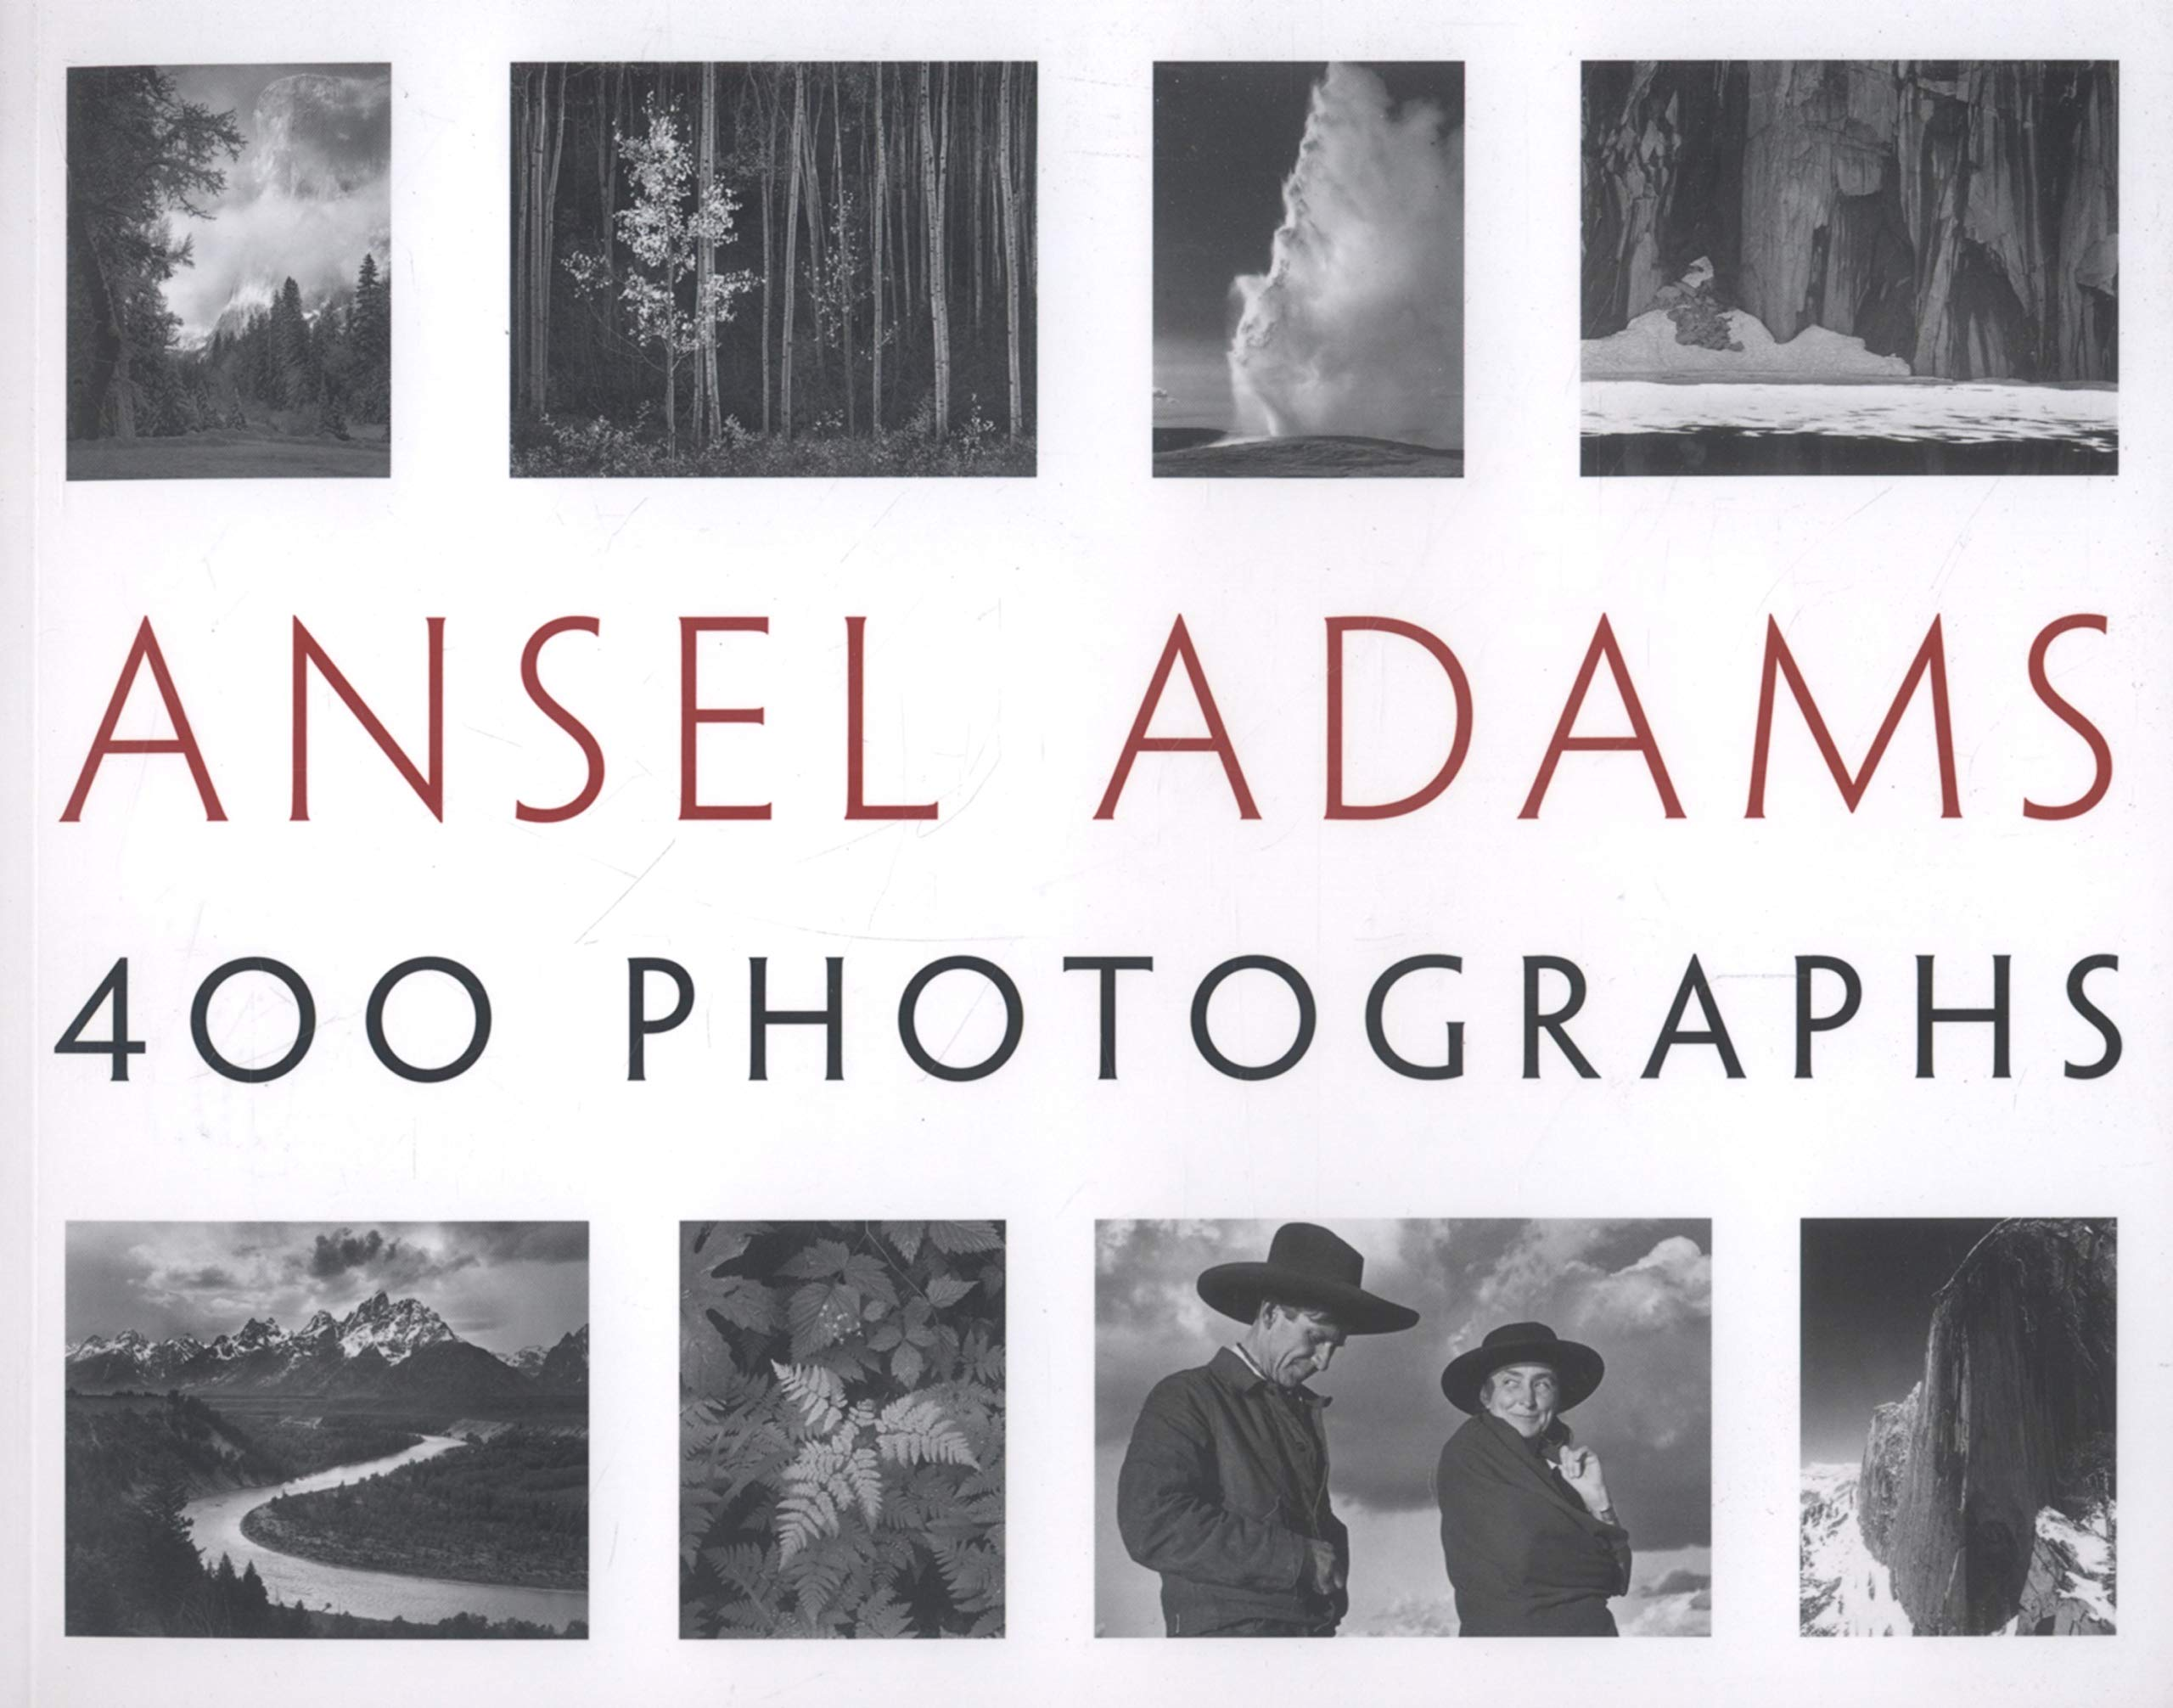 ansel adams 400 photographs by ansel adams 1 nov 2007 hardcover